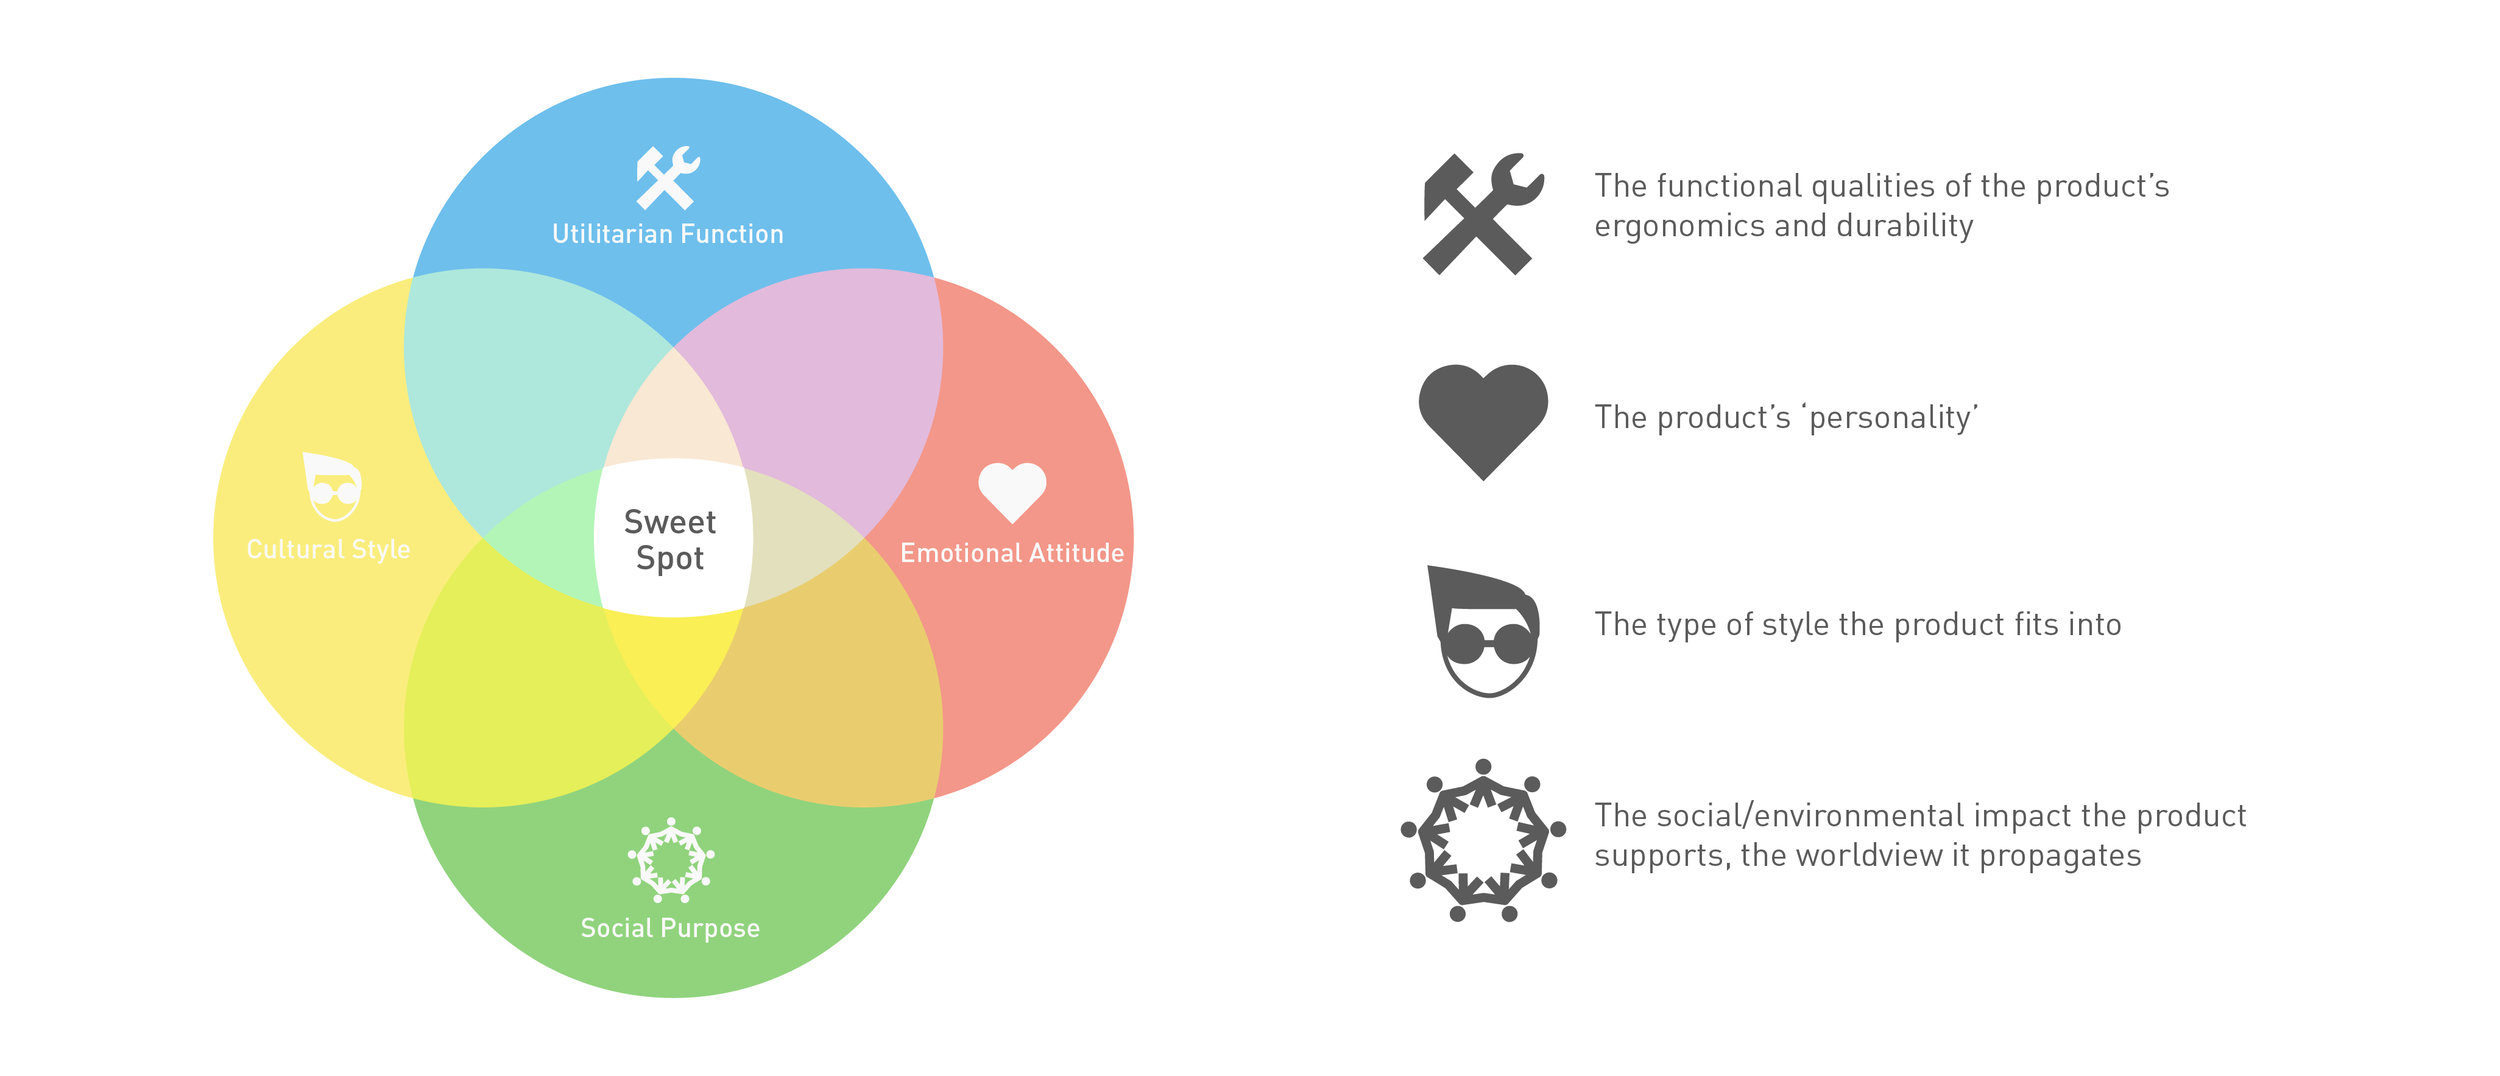 Image: The 4 dimensions of product design